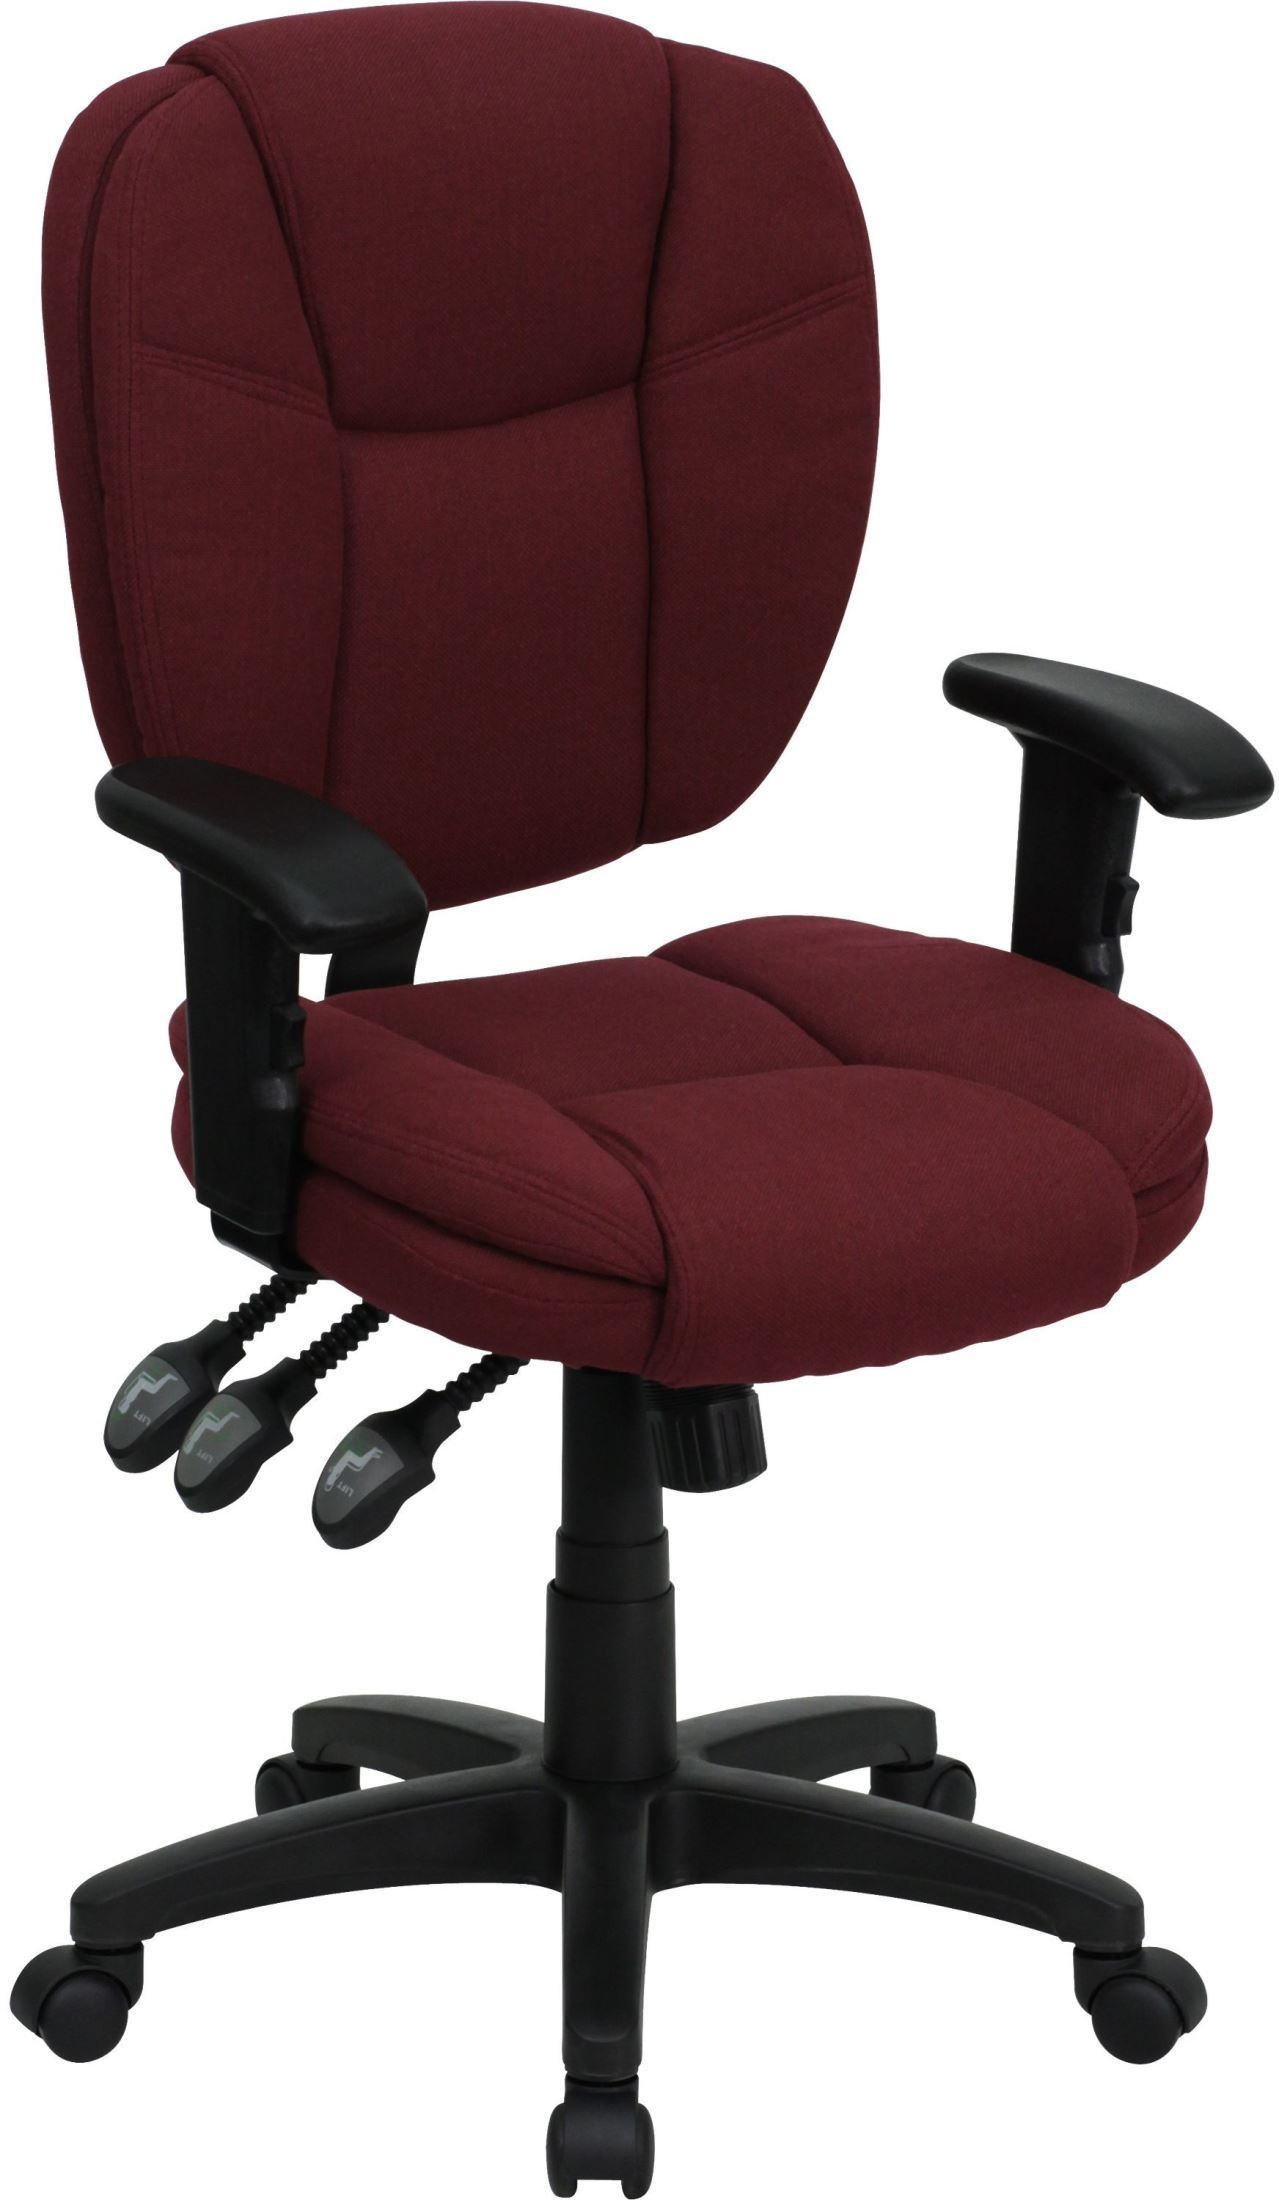 Burgundy Office Chair Burgundy Multi Functional Ergonomic Task Chair W Arms